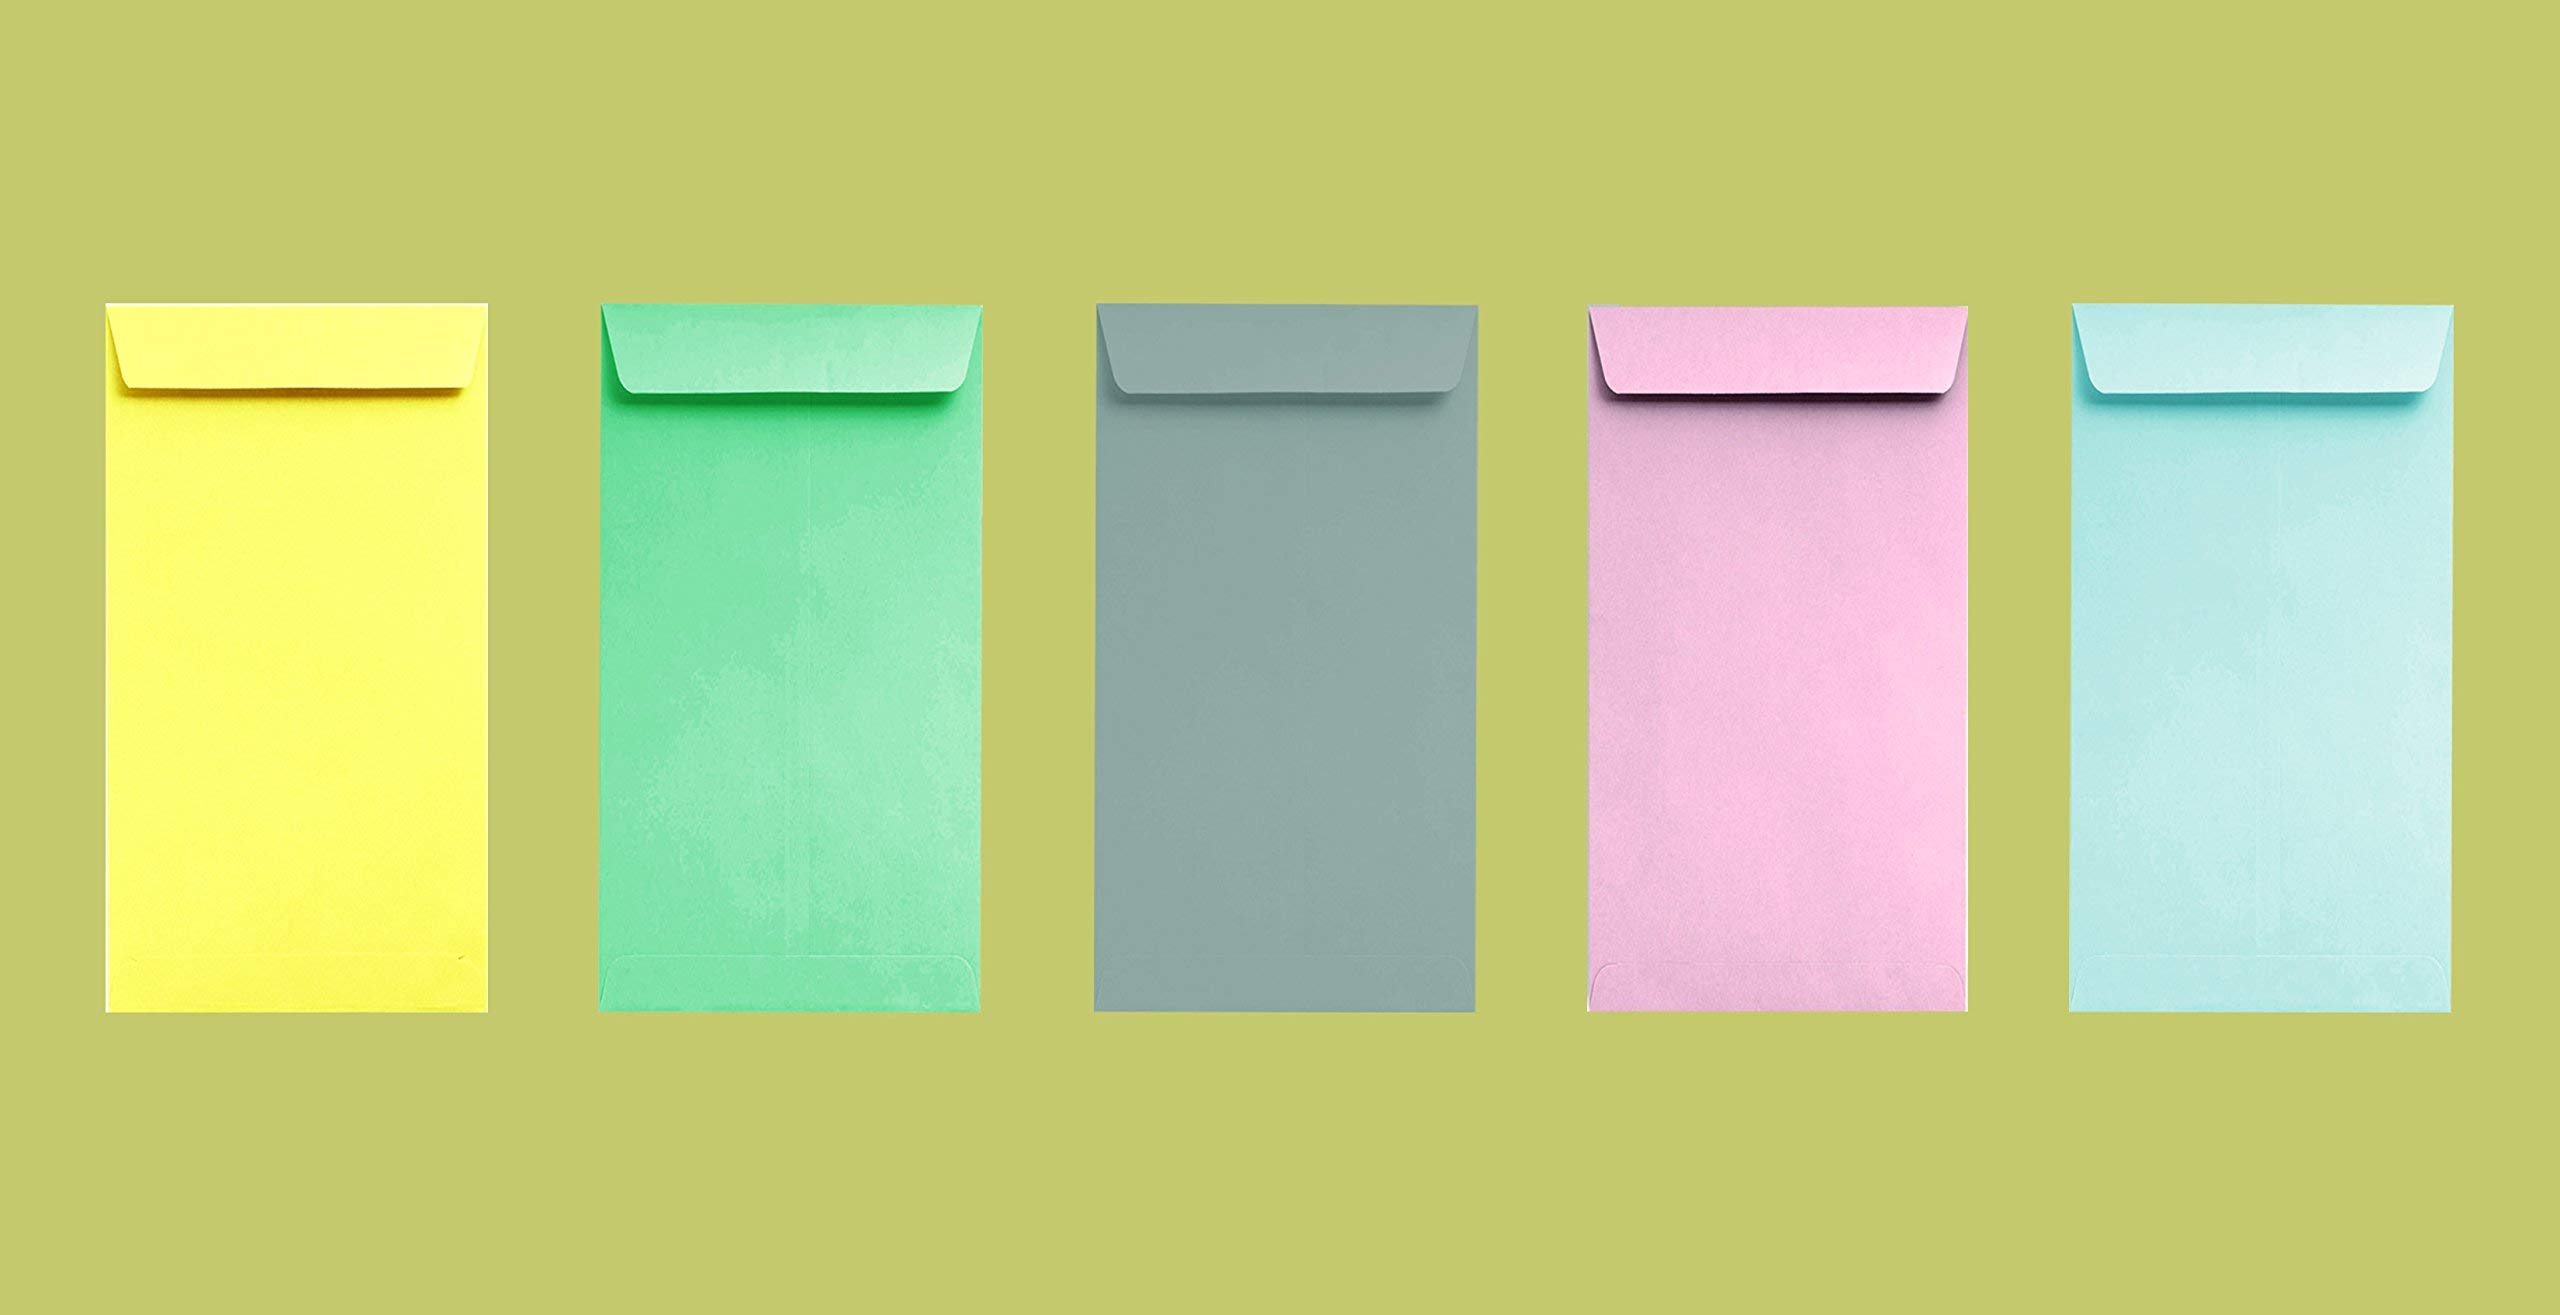 Coin/Cash/Small Parts #7 Assorted Colored Envelopes, 3-1/2'' X 6-1/2'', 24lb, 500/Box, 5 Colors/ 100 Each, Item # PAC75 by CASHIER DEPOT YOUR ONE STOP SHOP FOR ALL CASHIER'S NEEDS